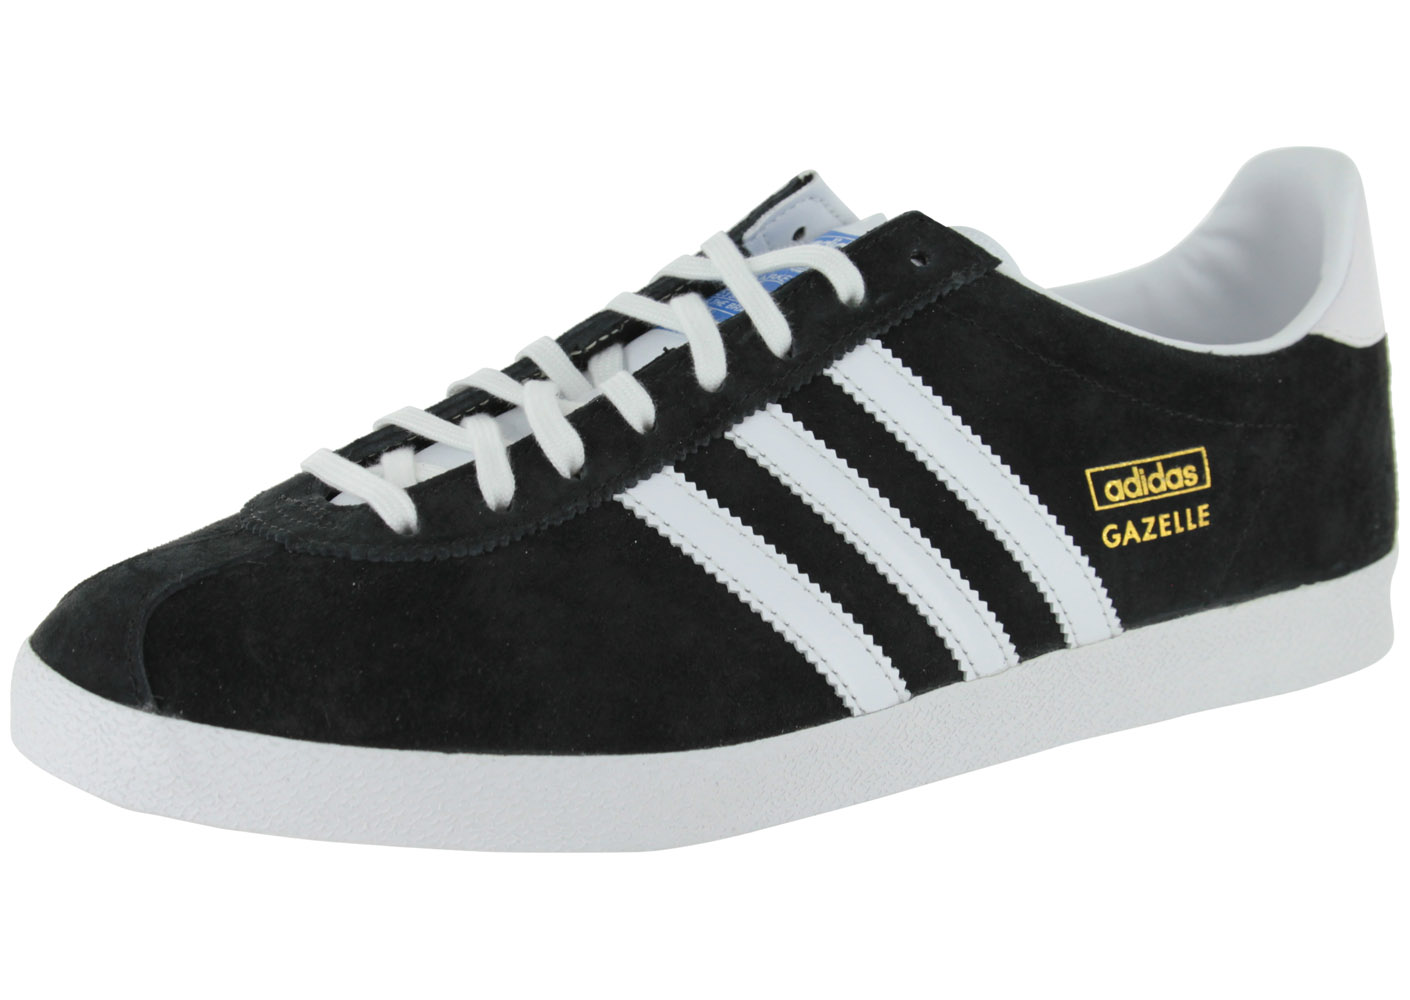 adidas gazelle homme grise scellier. Black Bedroom Furniture Sets. Home Design Ideas